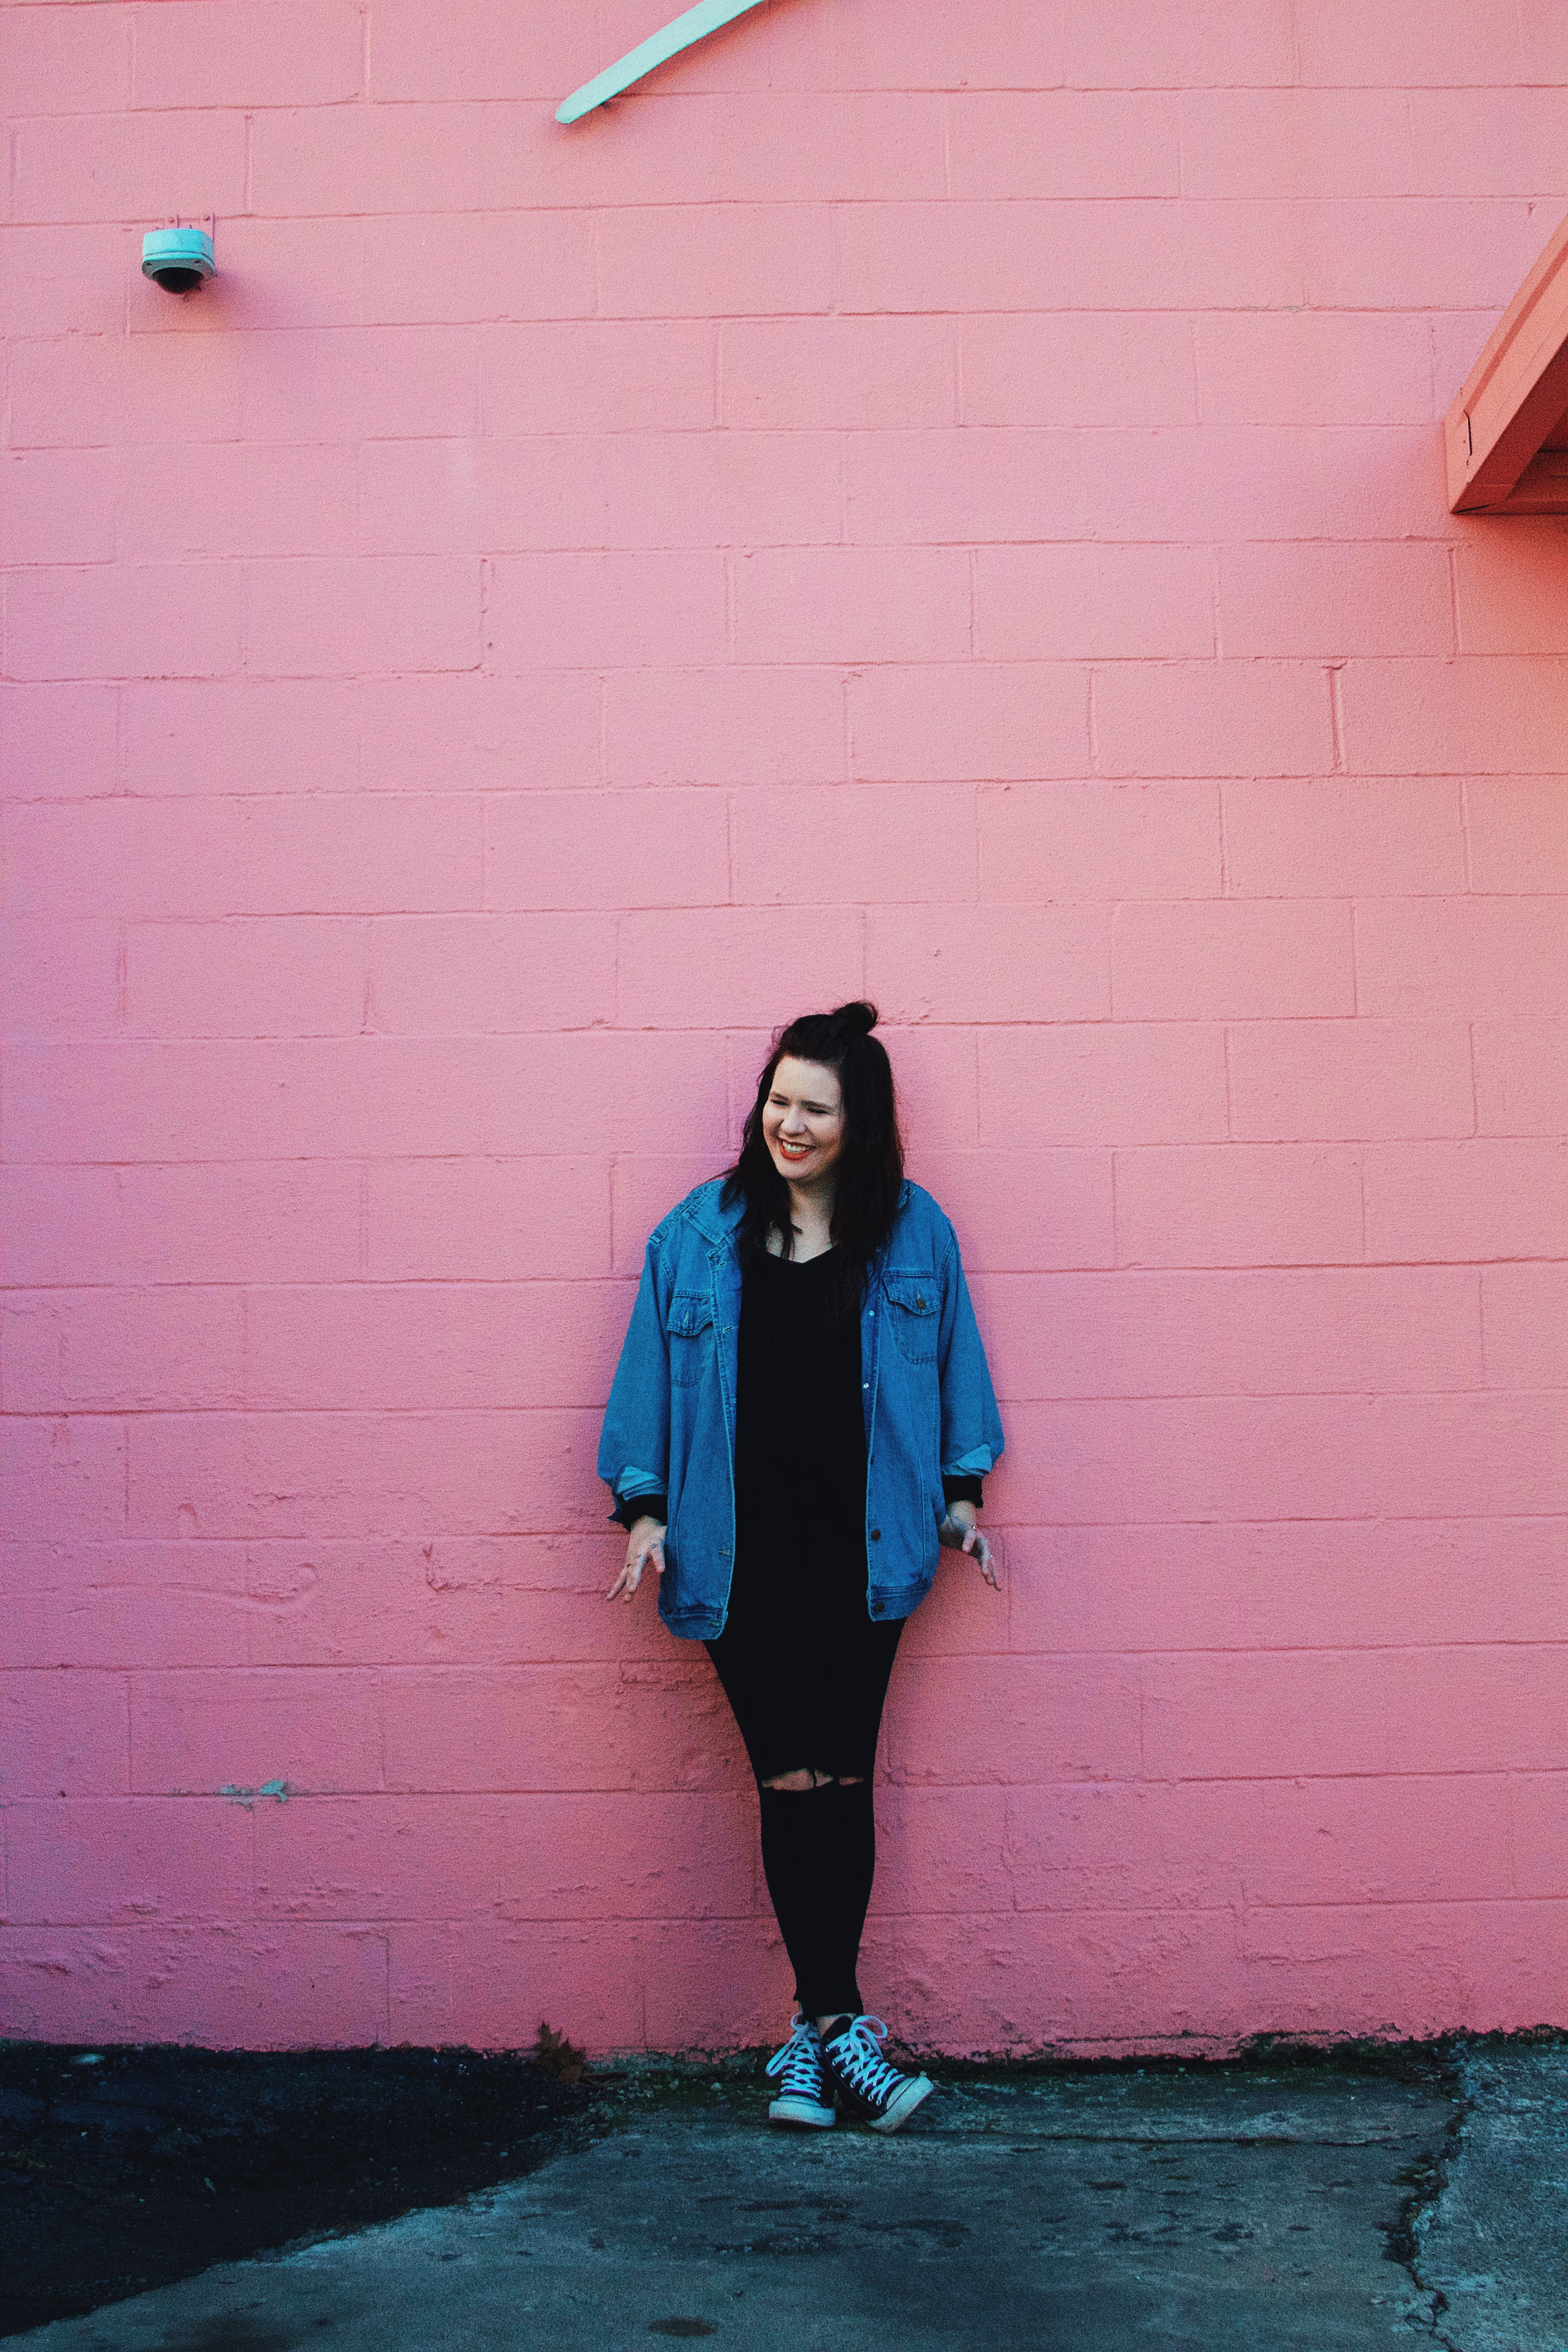 A smiling woman in a denim jacket and ripped jeans leaning against a pink wall